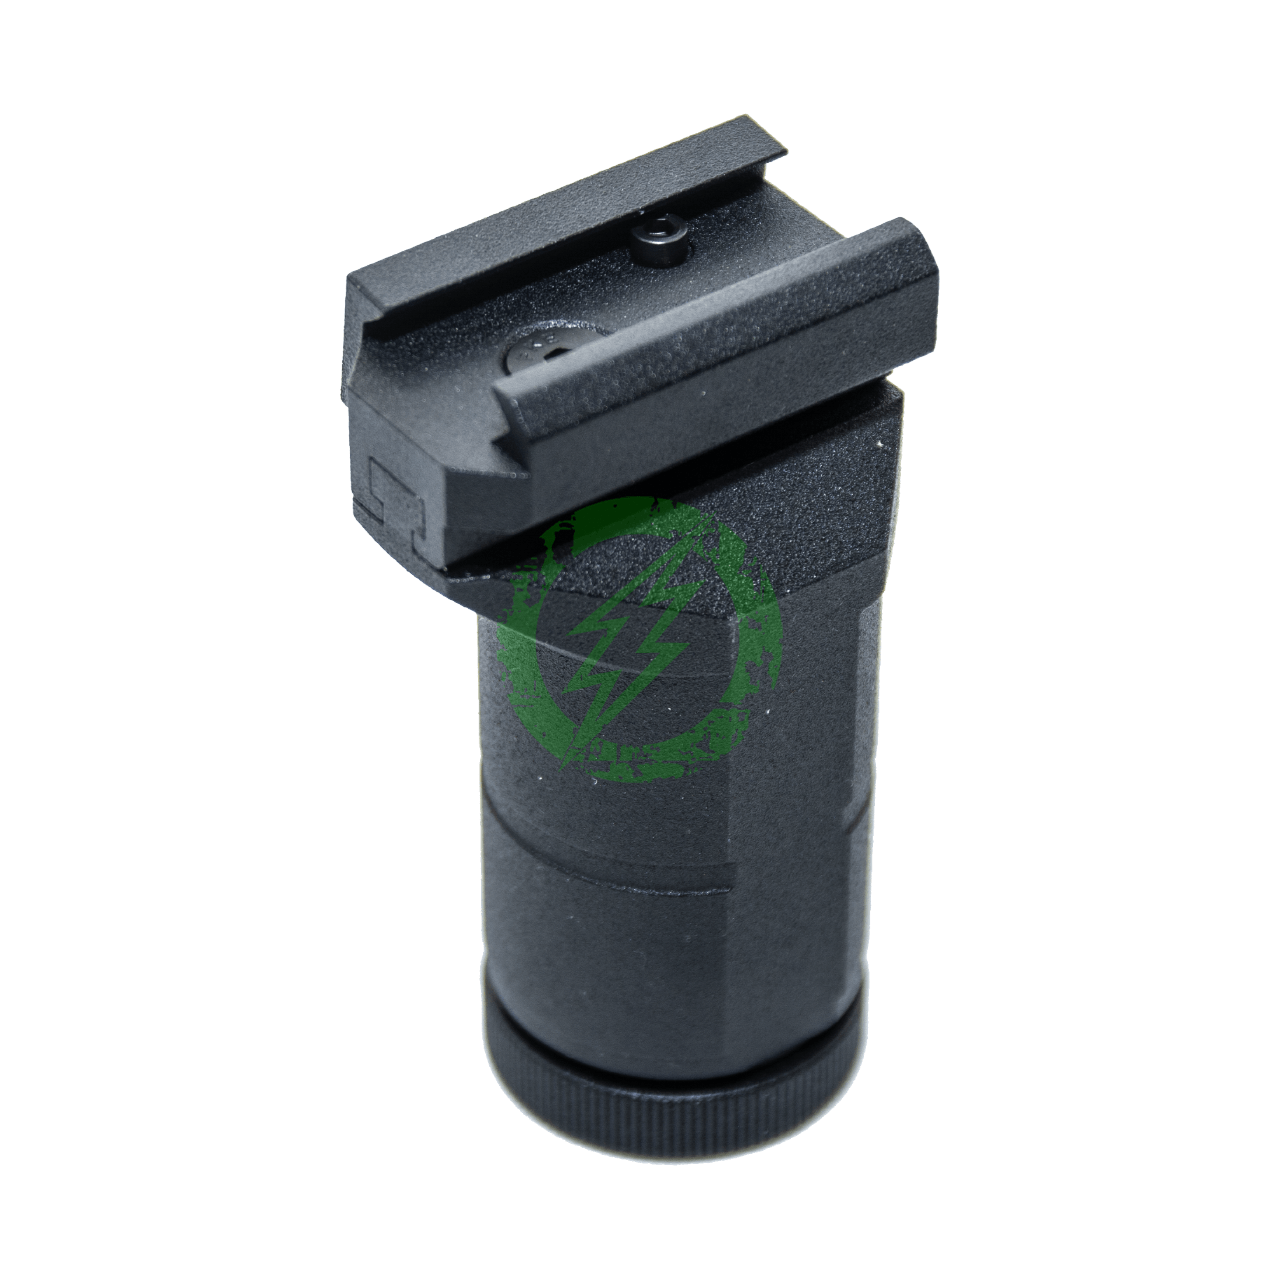 LCT Z-Series RK Fore Grip for 20mm Rail | Black rk-0